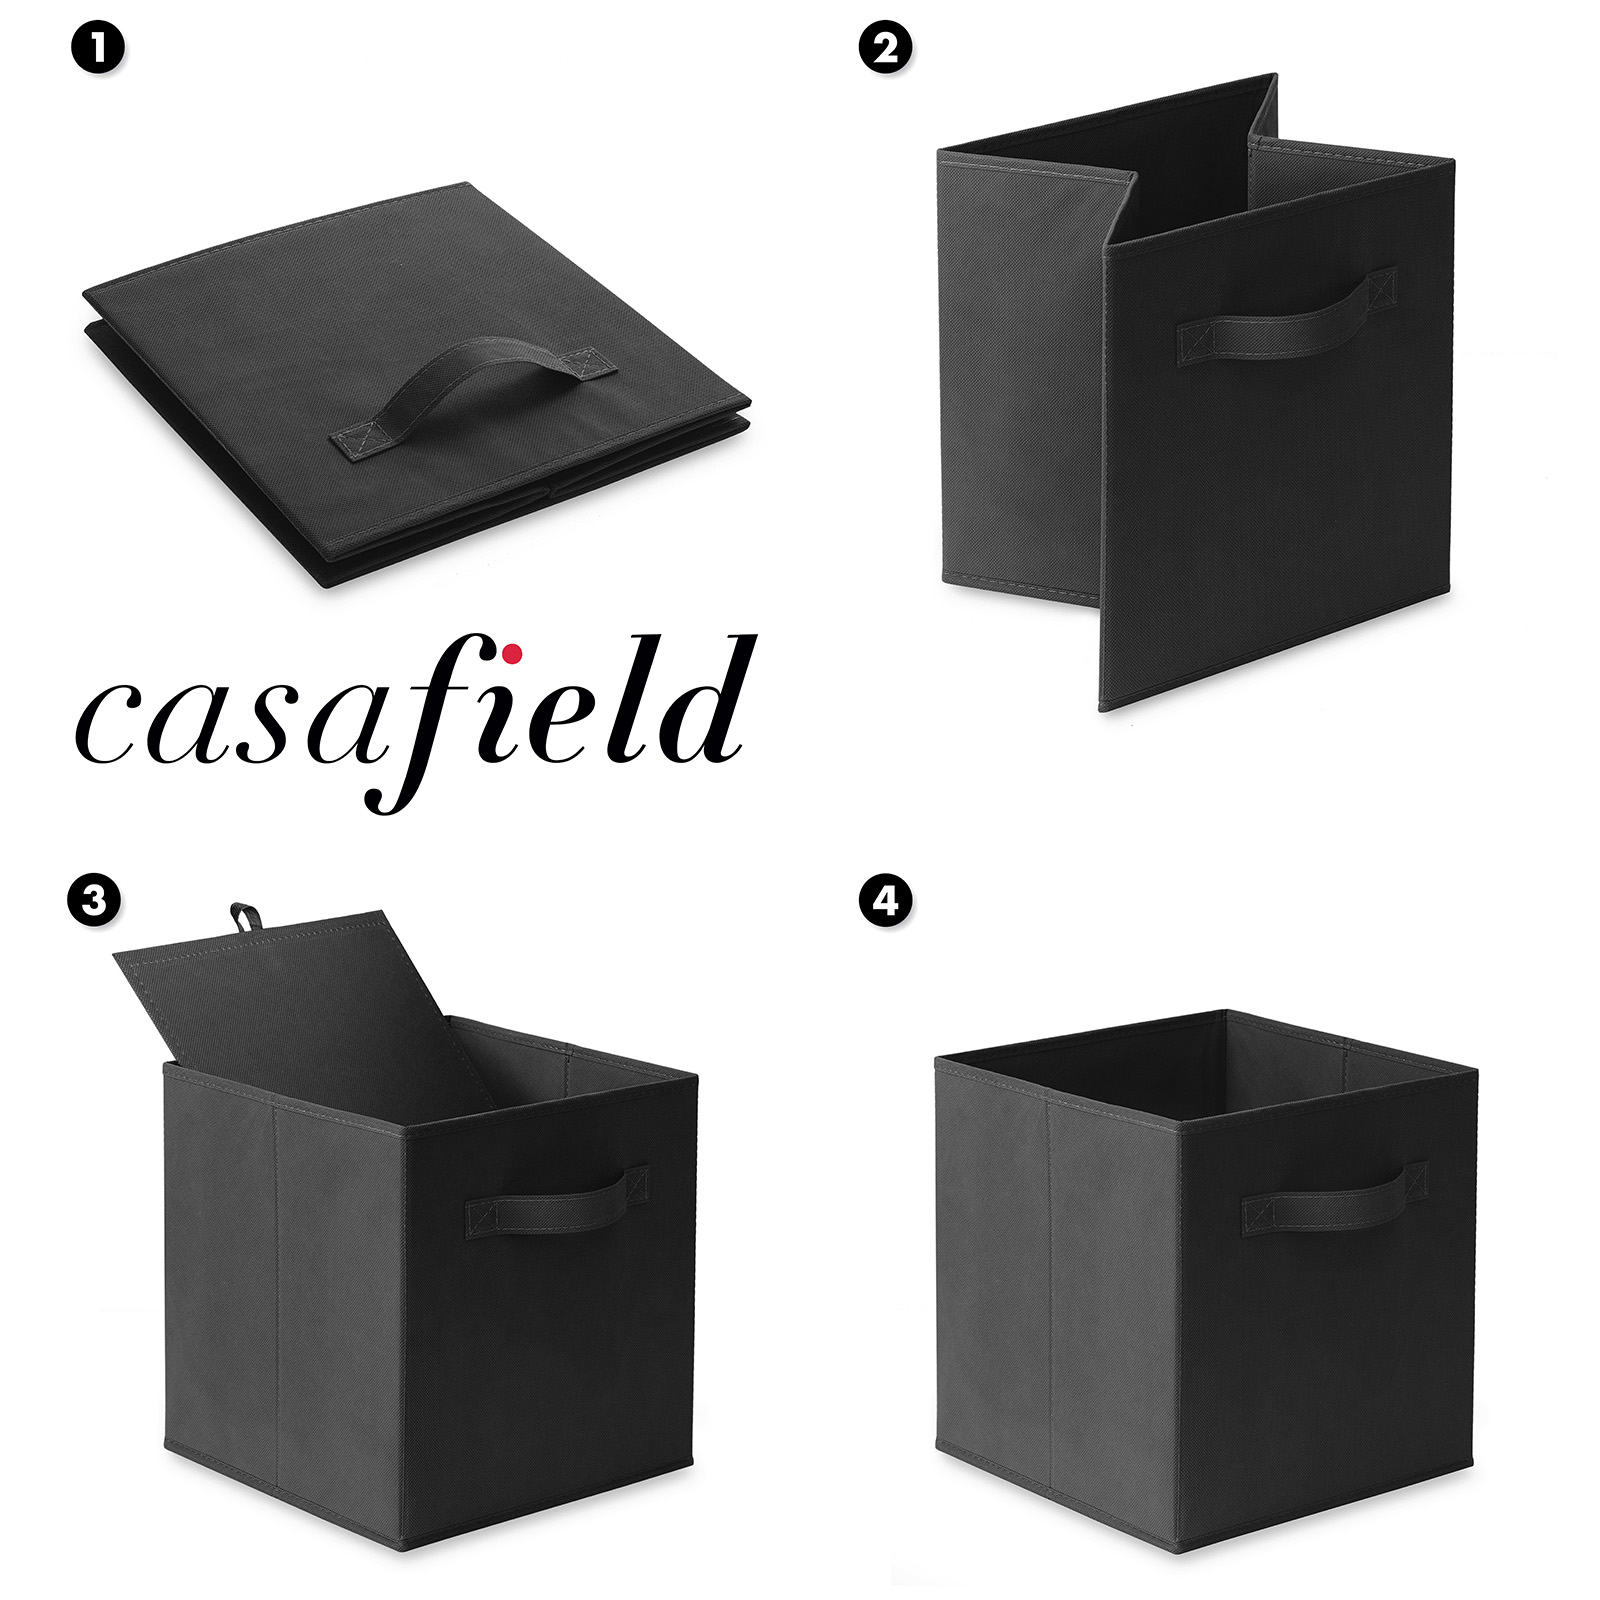 6-Collapsible-Foldable-Cloth-Fabric-Cubby-Cube-Storage-Bins-Baskets-for-Shelves thumbnail 14